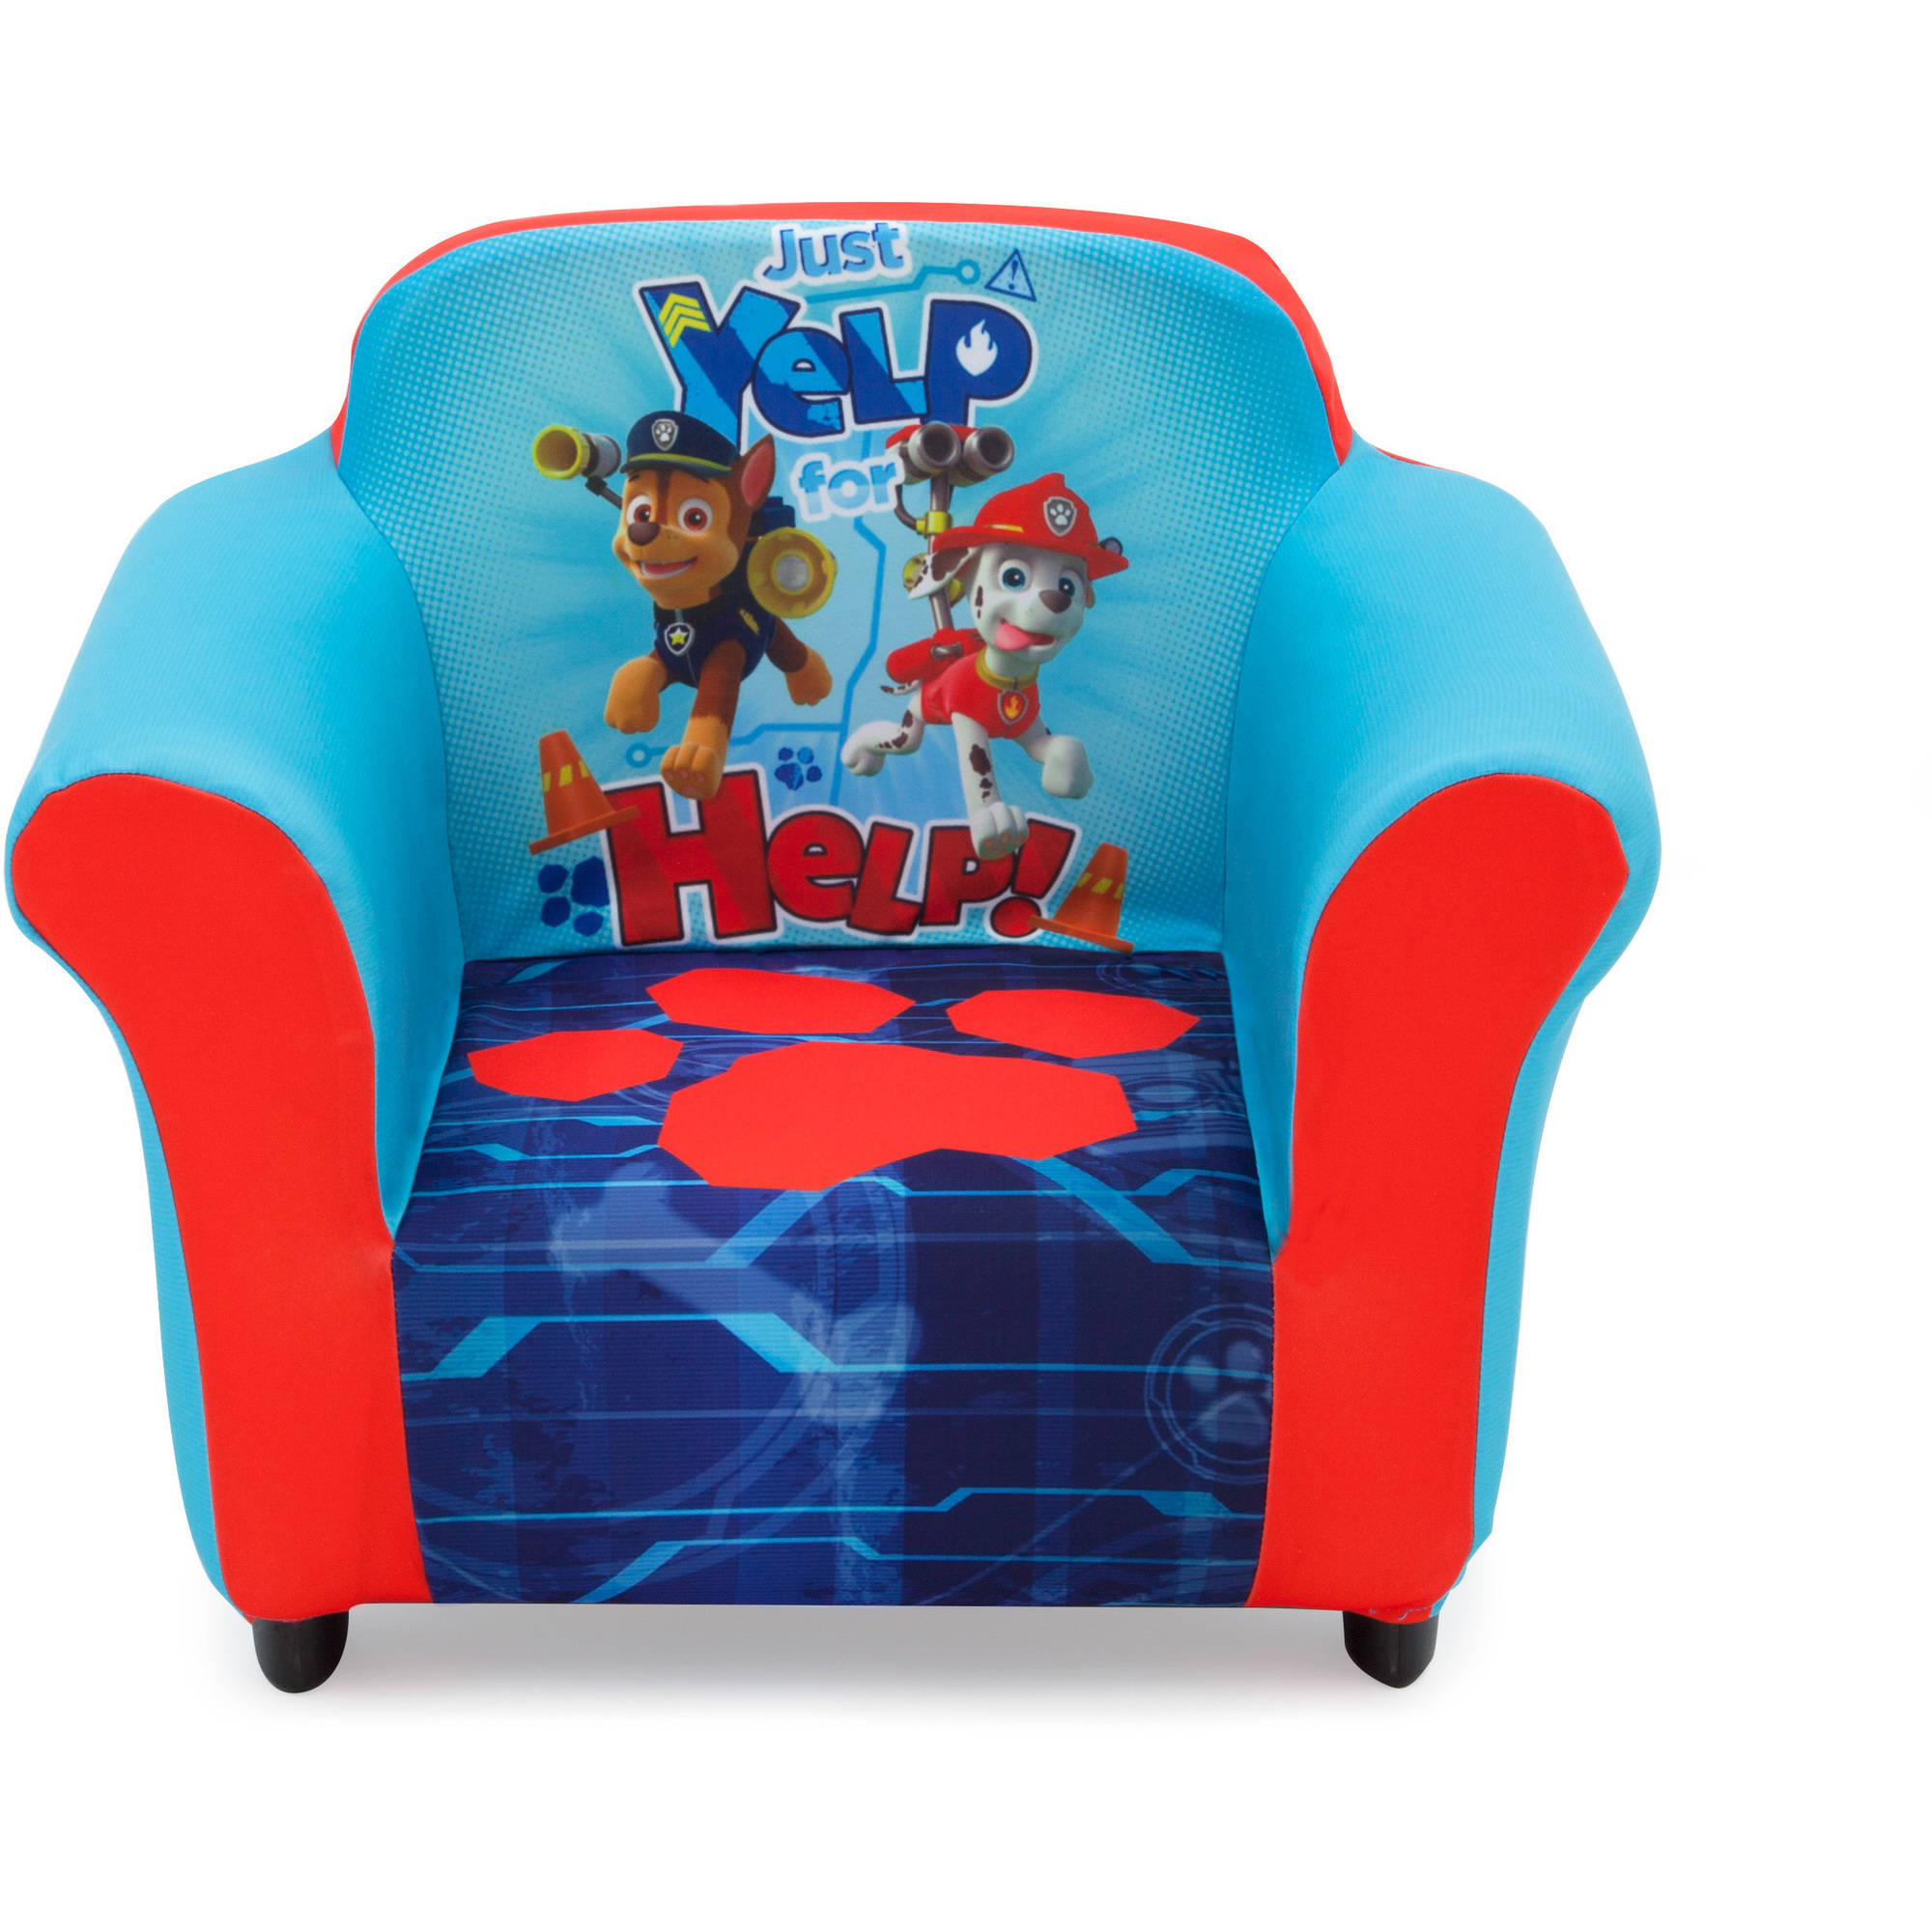 NEW PAW PATROL NICKELODEON KIDS PINK INFLATABLE CHAIR YEARS